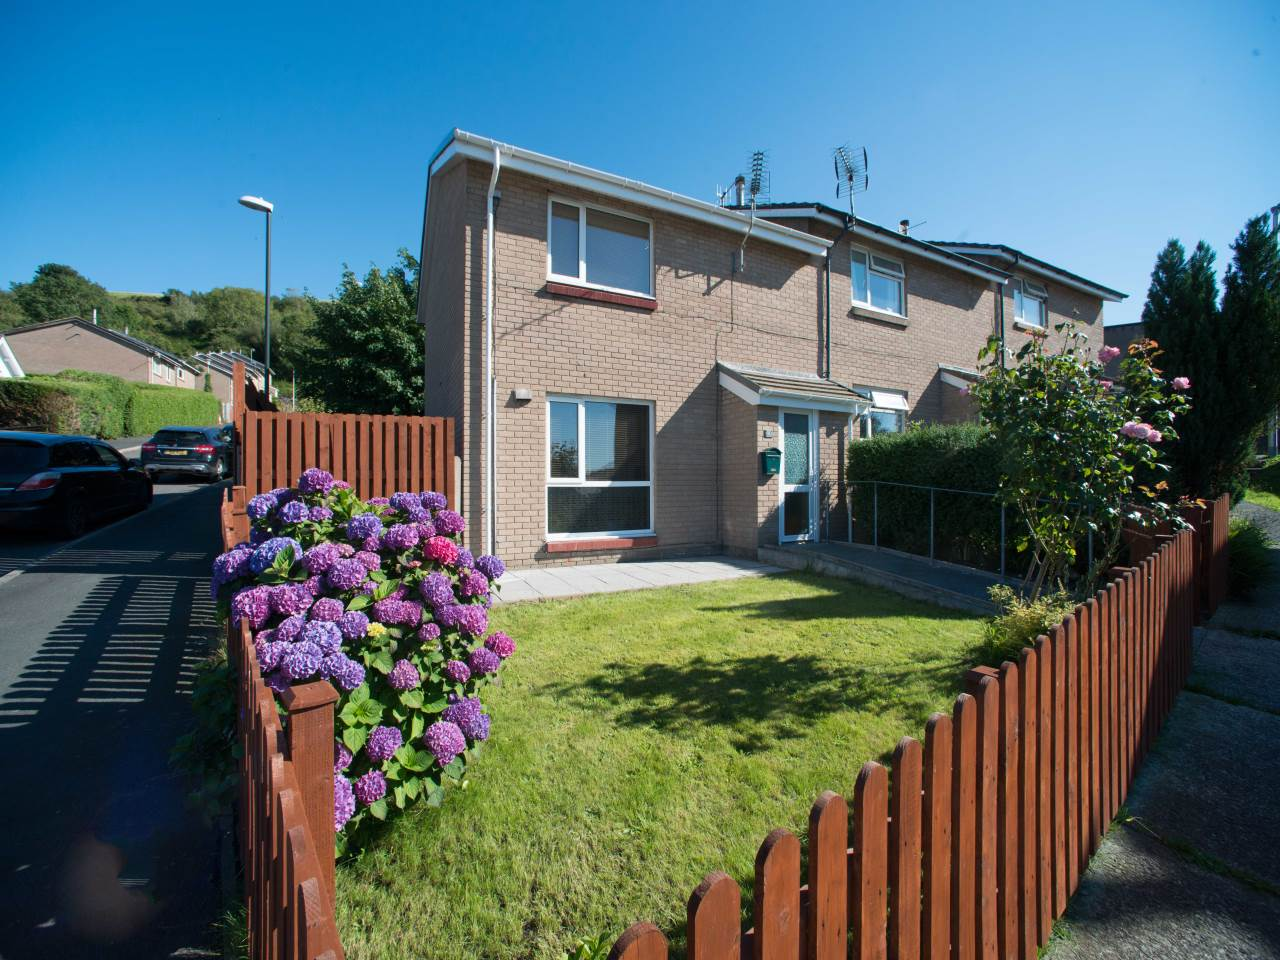 2 bed house for sale in Heol Tyn y Fron, Penparcau, SY23